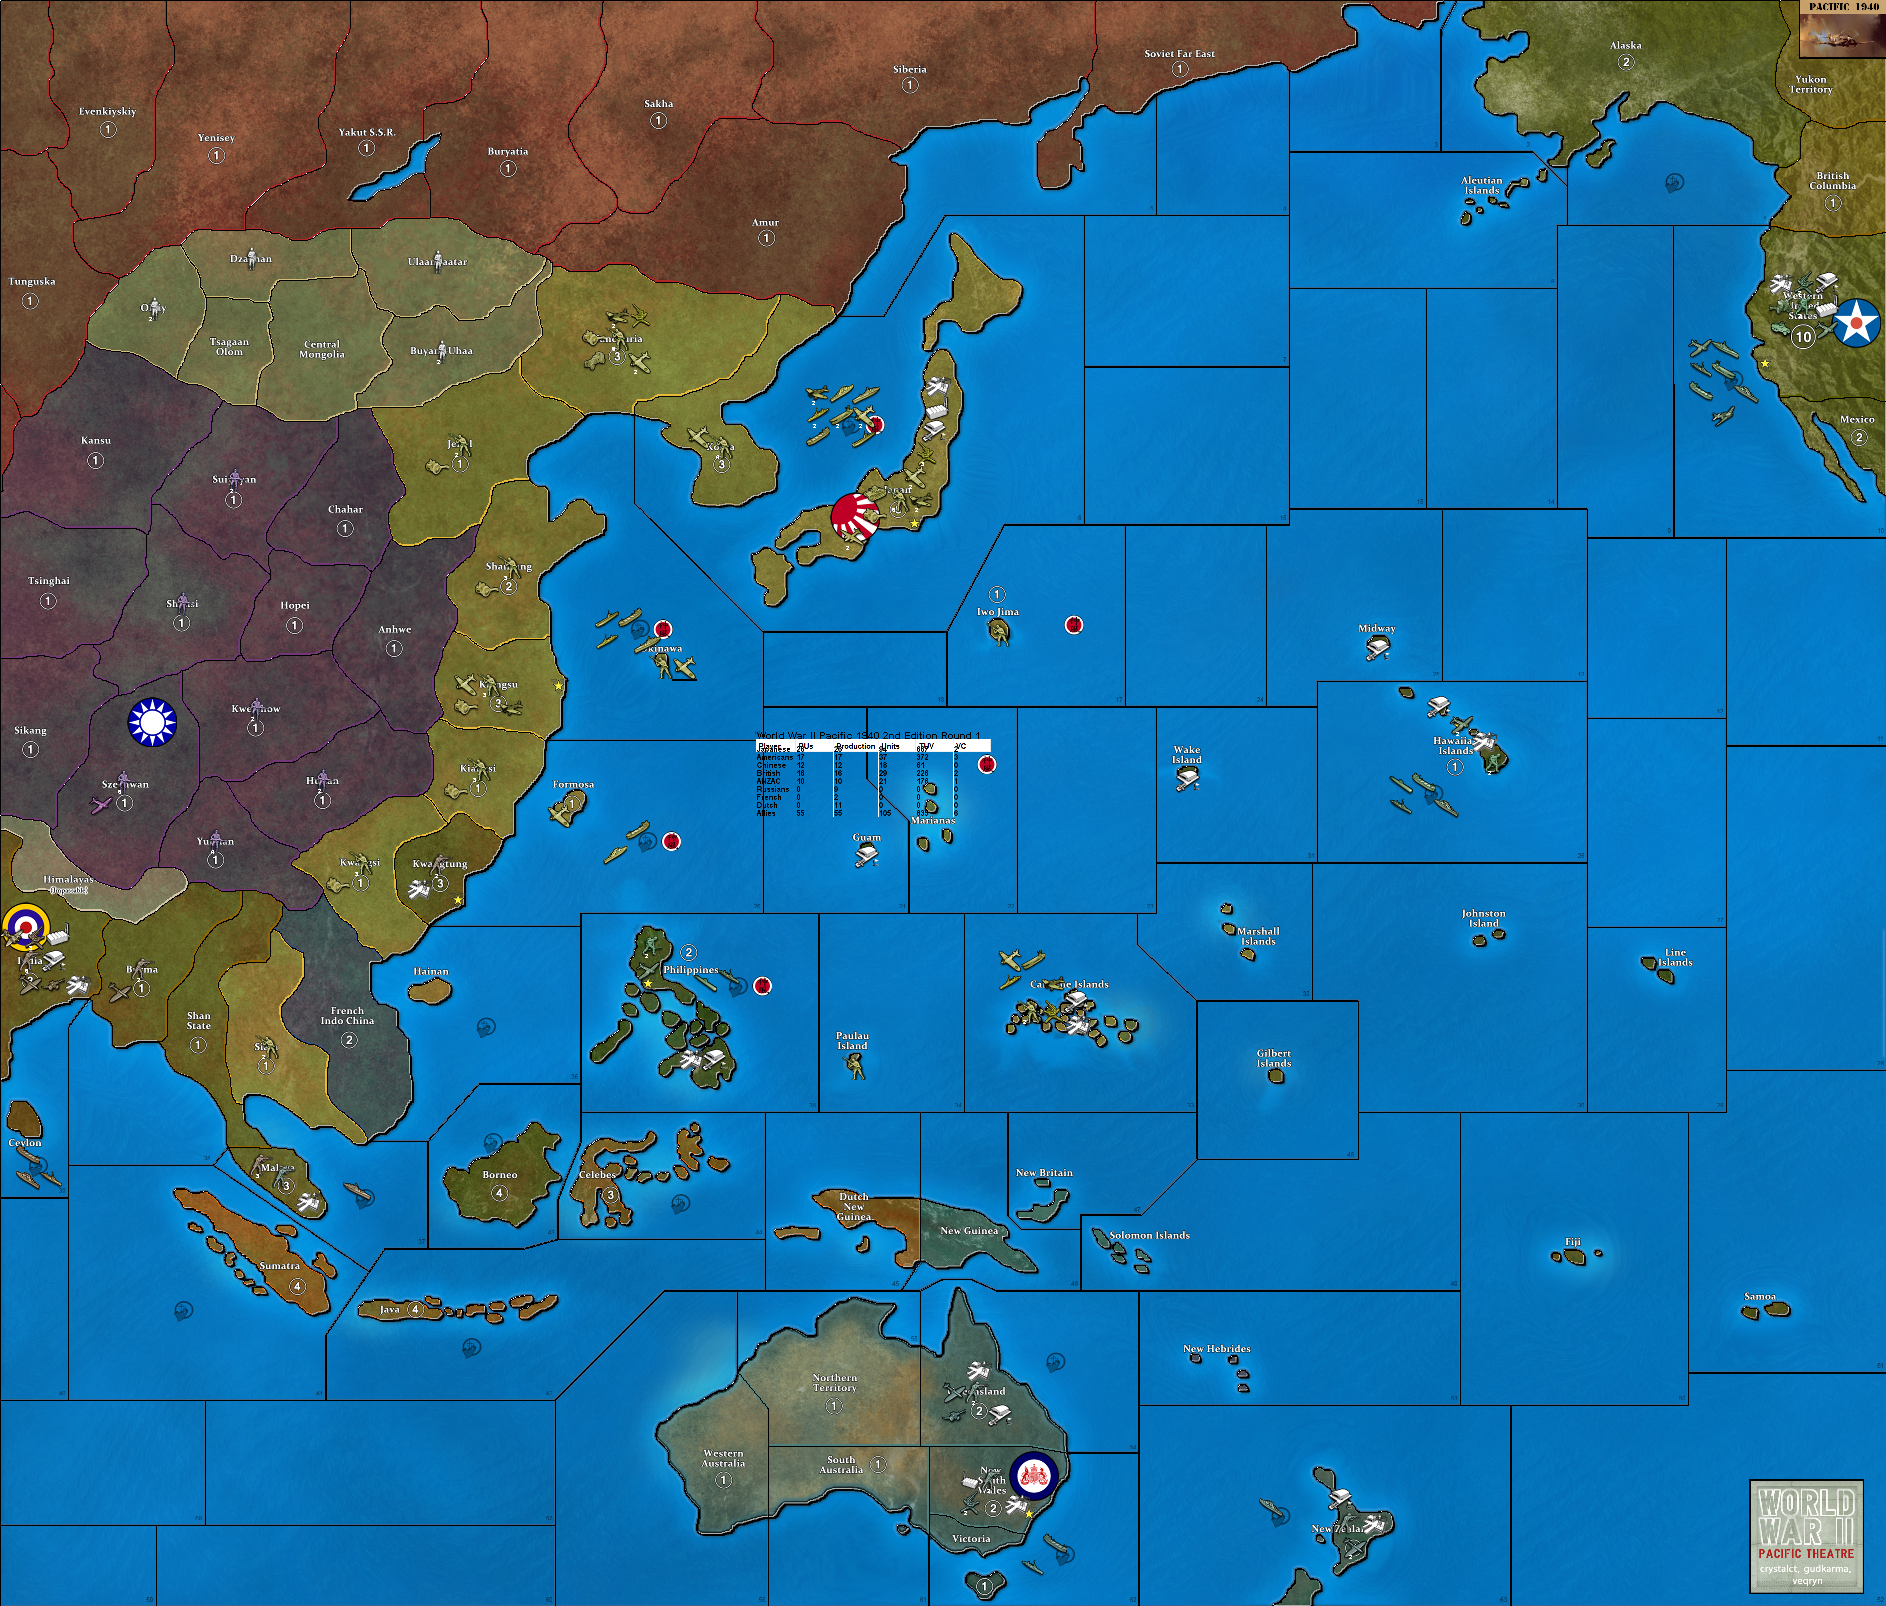 Axis And Allies Pacific Map World War II Pacific 1940 2nd Edition | Axis & Allies Wiki